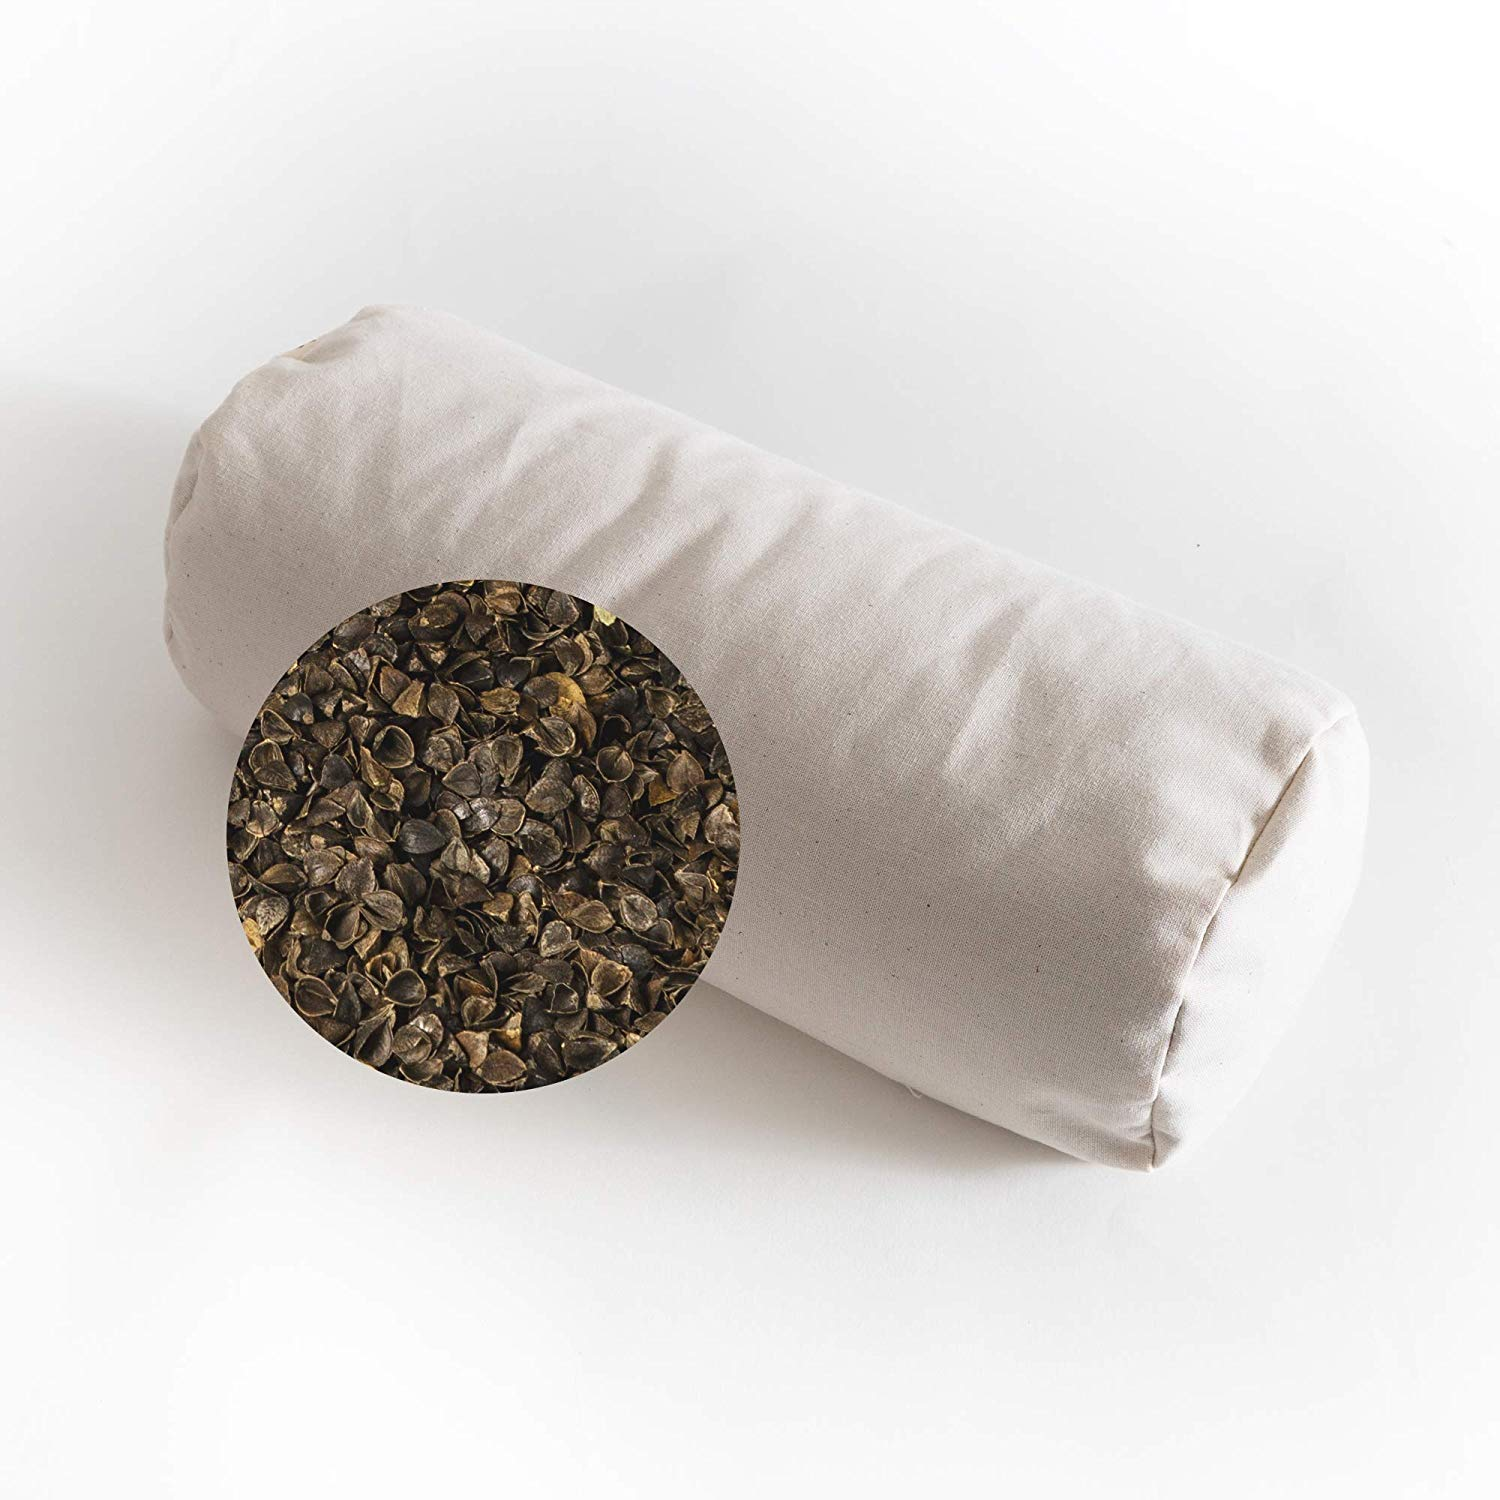 Sachi Organics best buckwheat pillow review by www.dailysleep.org